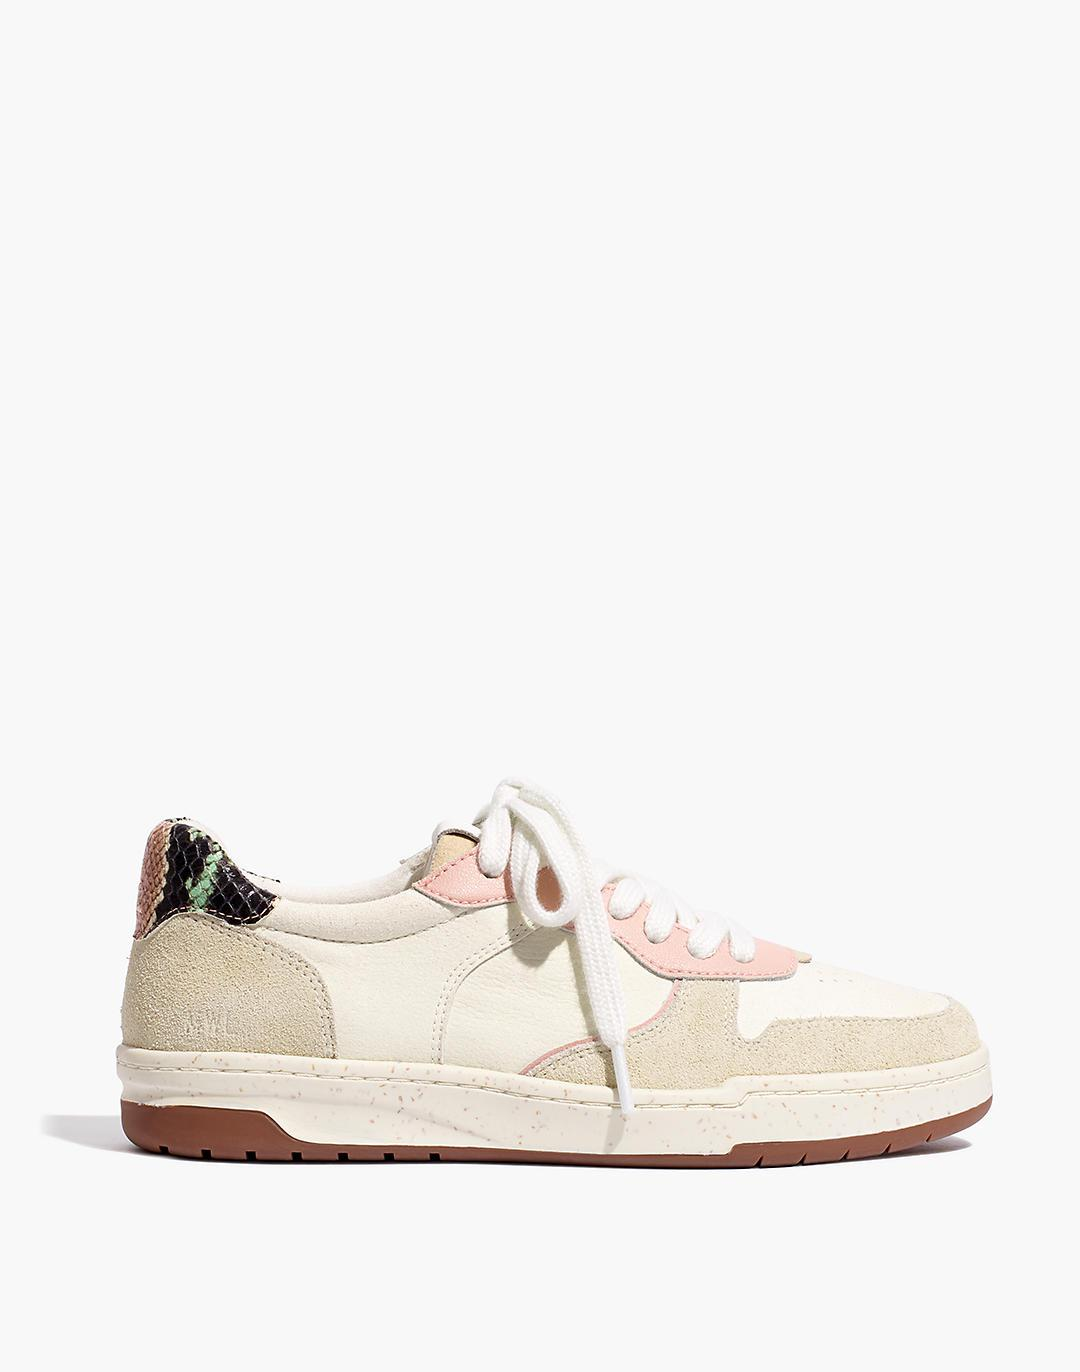 Court Sneakers in Colorblock Suede and Snakeskin Embossed Leather 1